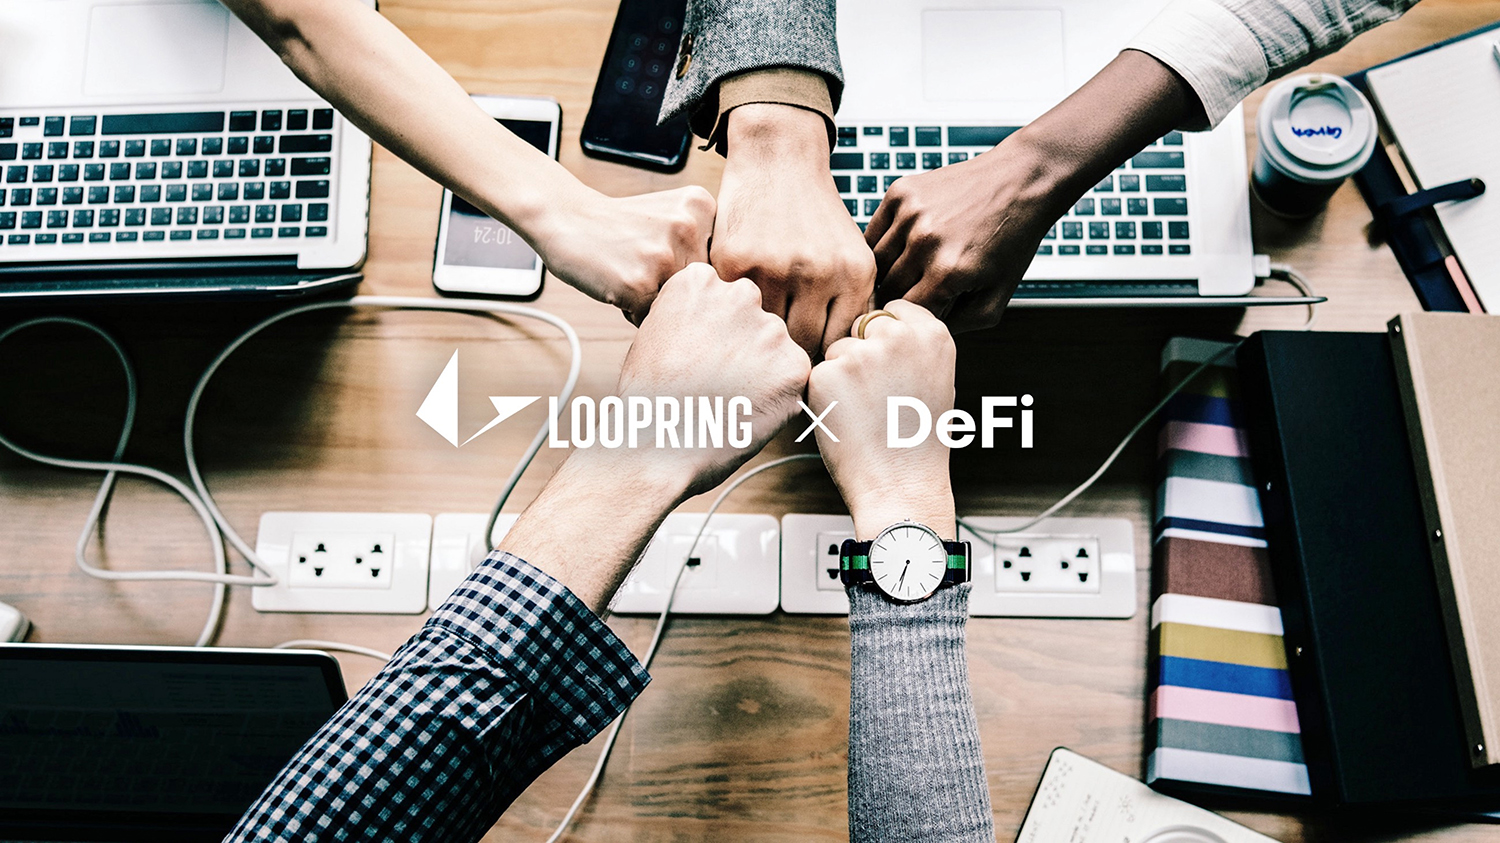 Loopring Joins DeFi to Build Up The Decentralized